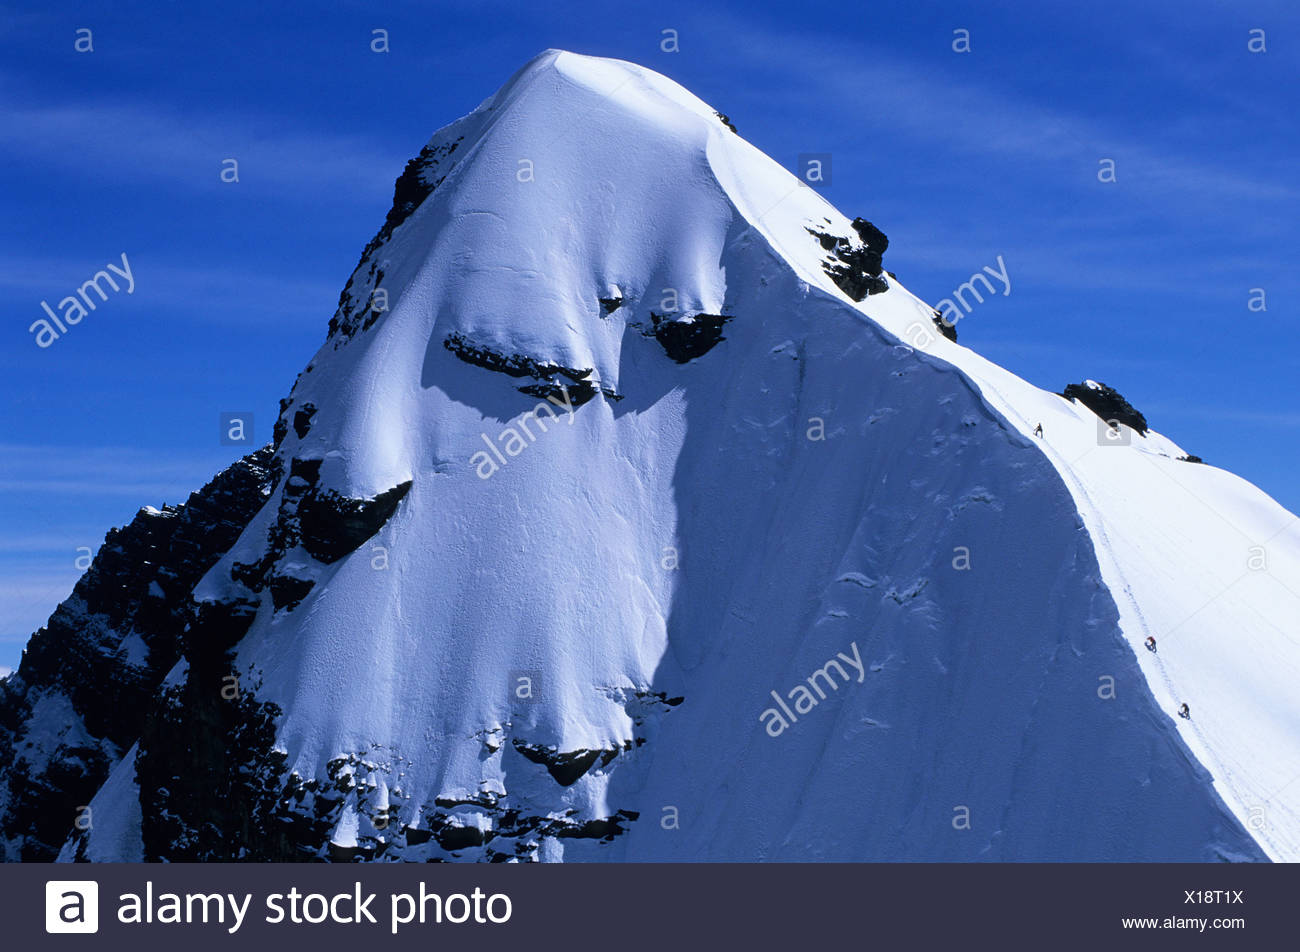 A mountain climbing team approaches the summit of Pequeno Alpamayo, Cordillera Real, Bolivia - Stock Image